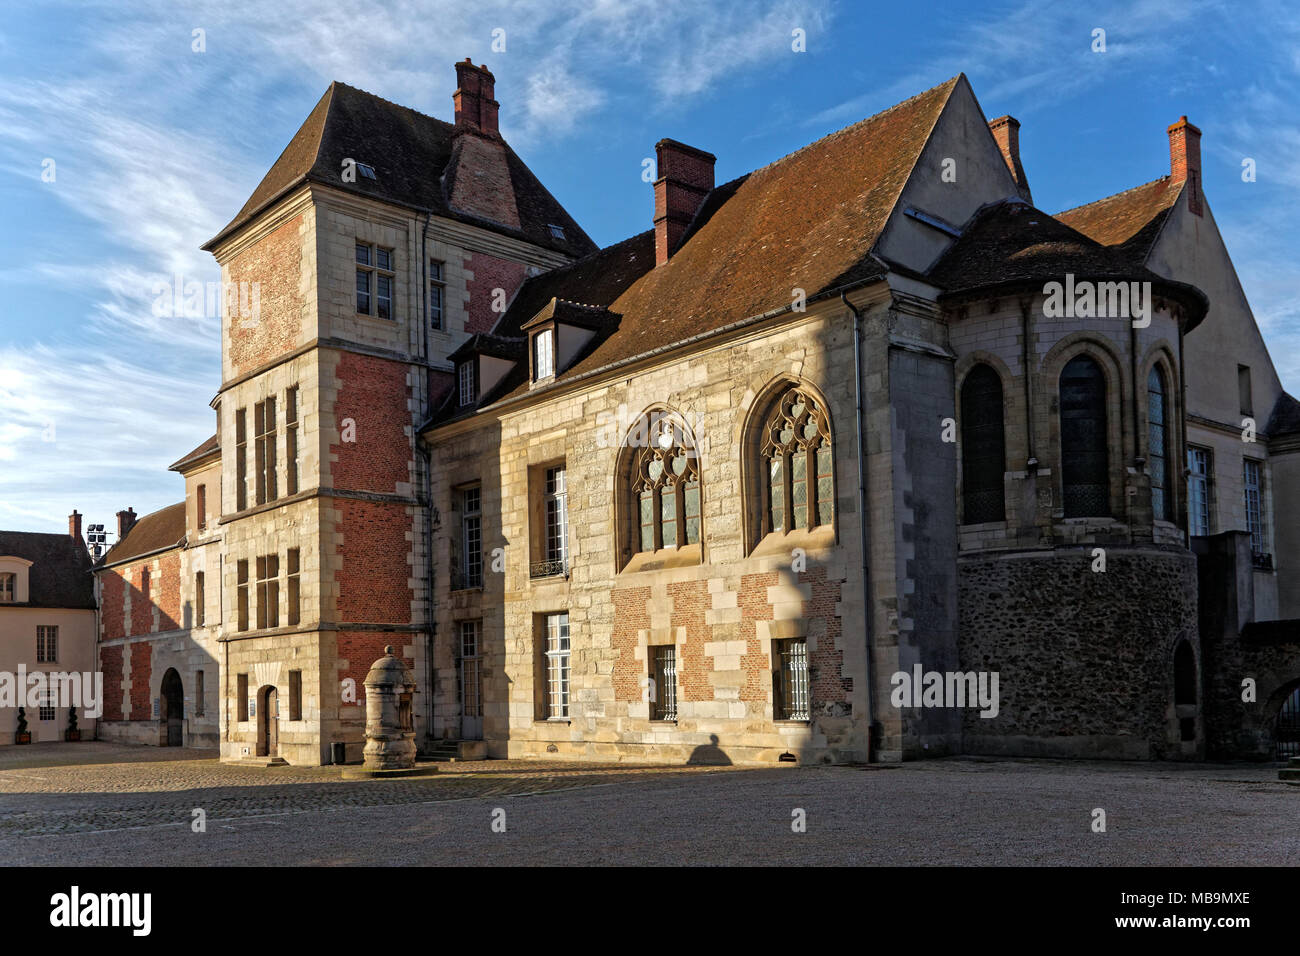 The Episcopal Palace, now The Bossuet Museum, Meaux, Seine-et-Marne, Île-de-France, near Paris, France, attached to Cathedrale Saint-Etienne, Meaux - Stock Image